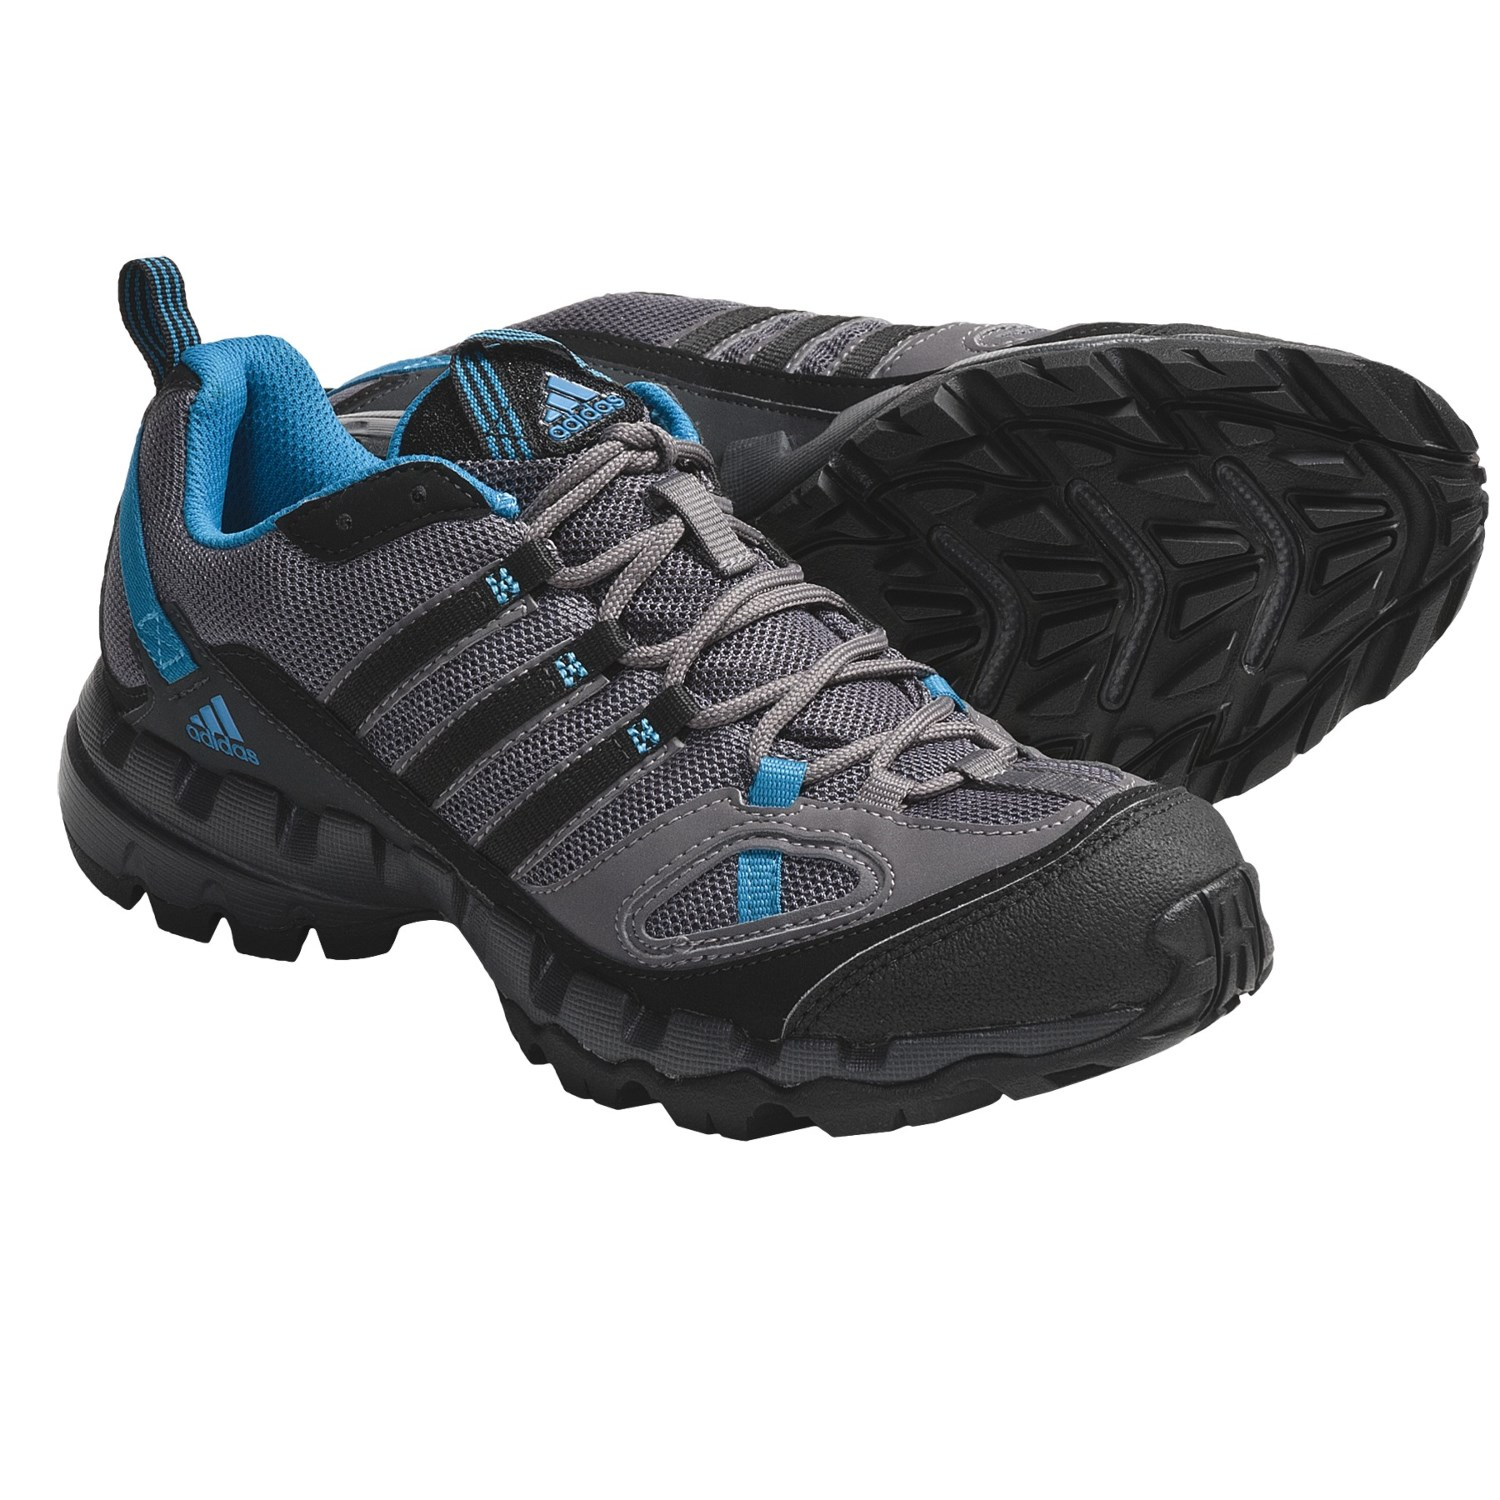 Adidas Outdoor AX 1 Trail Running Shoes (For Women) in Sharp Grey